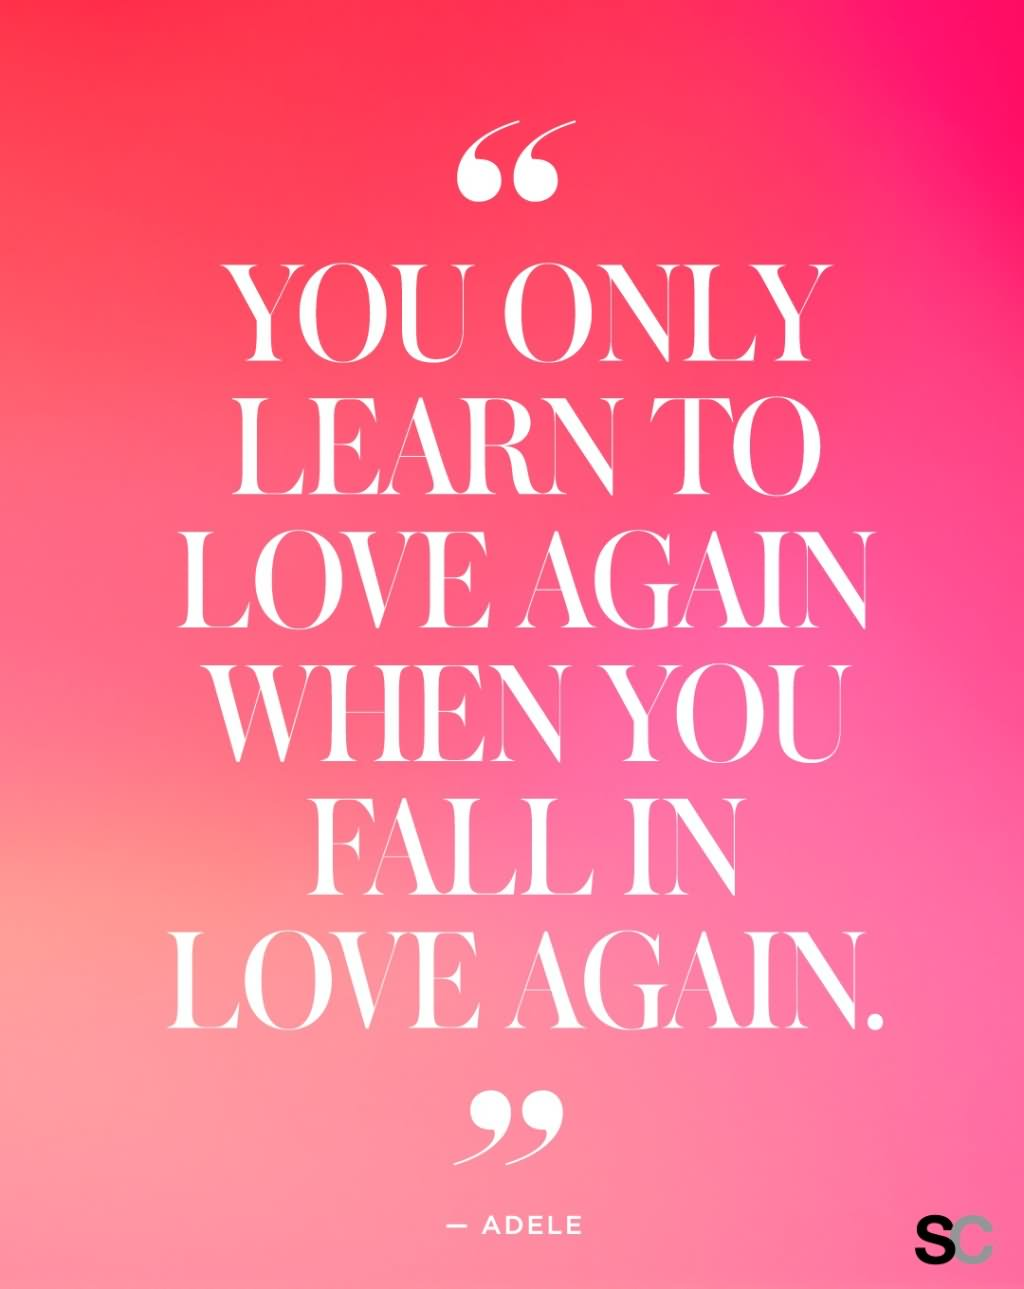 You only learn to love again when you fall in love again.